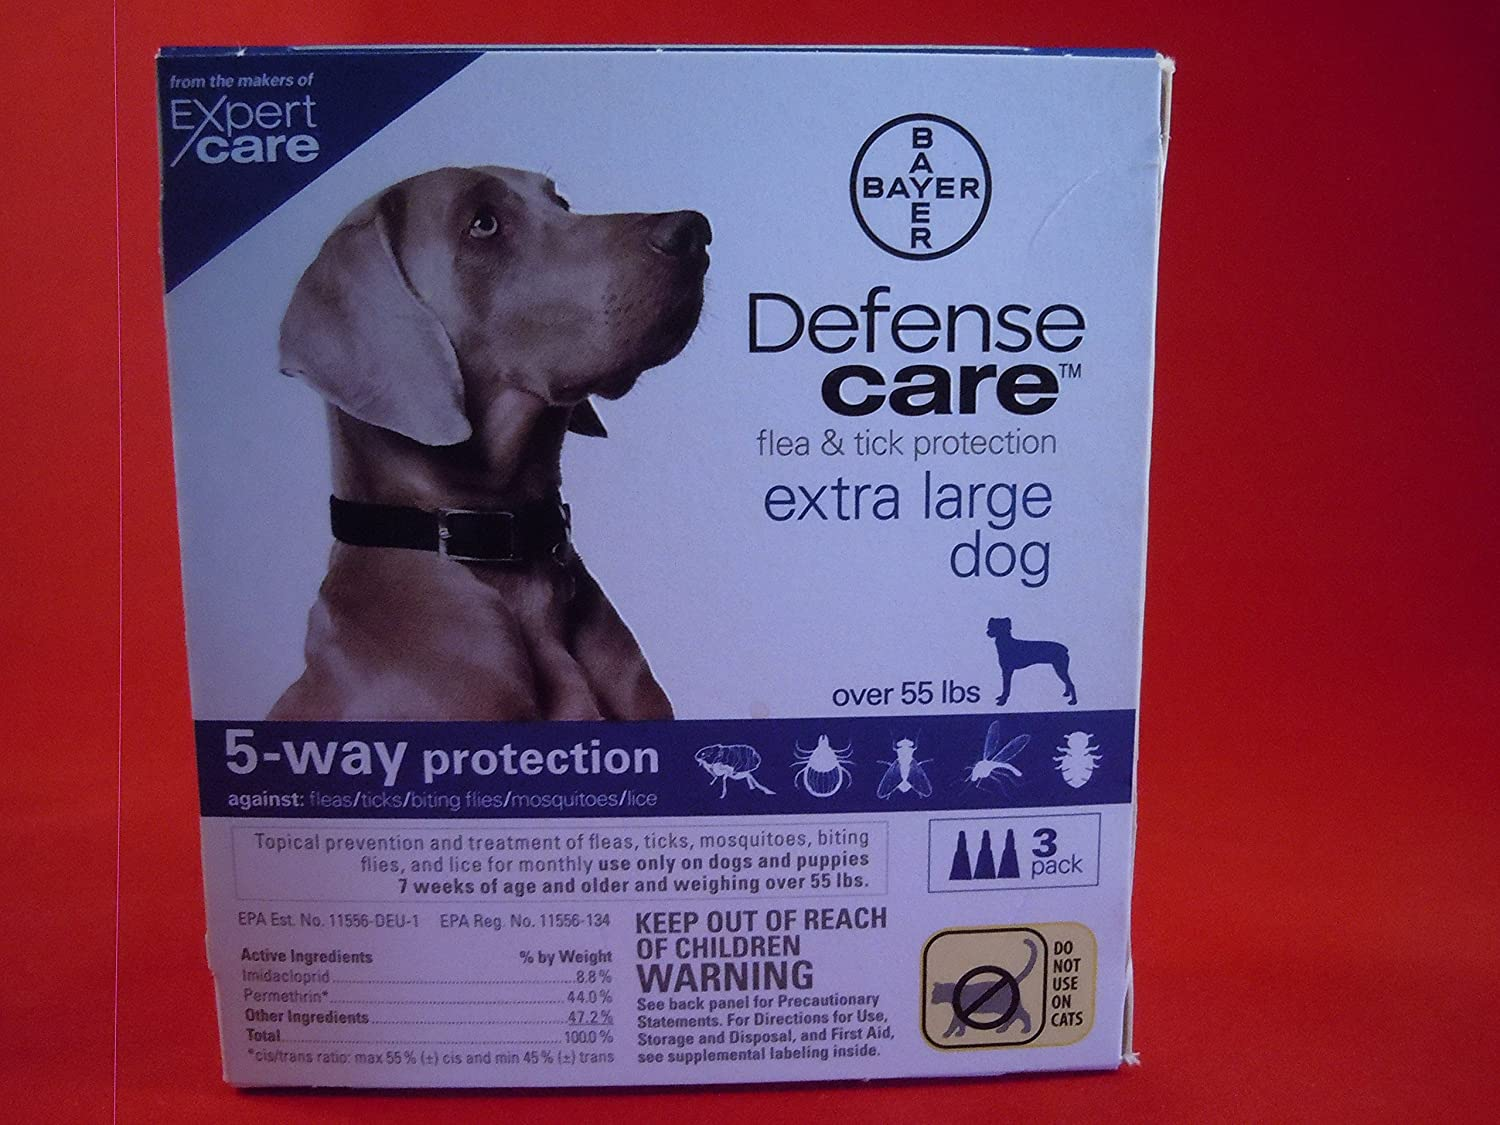 Flea & Tick Protection for Extra Large Dog by Defense Care